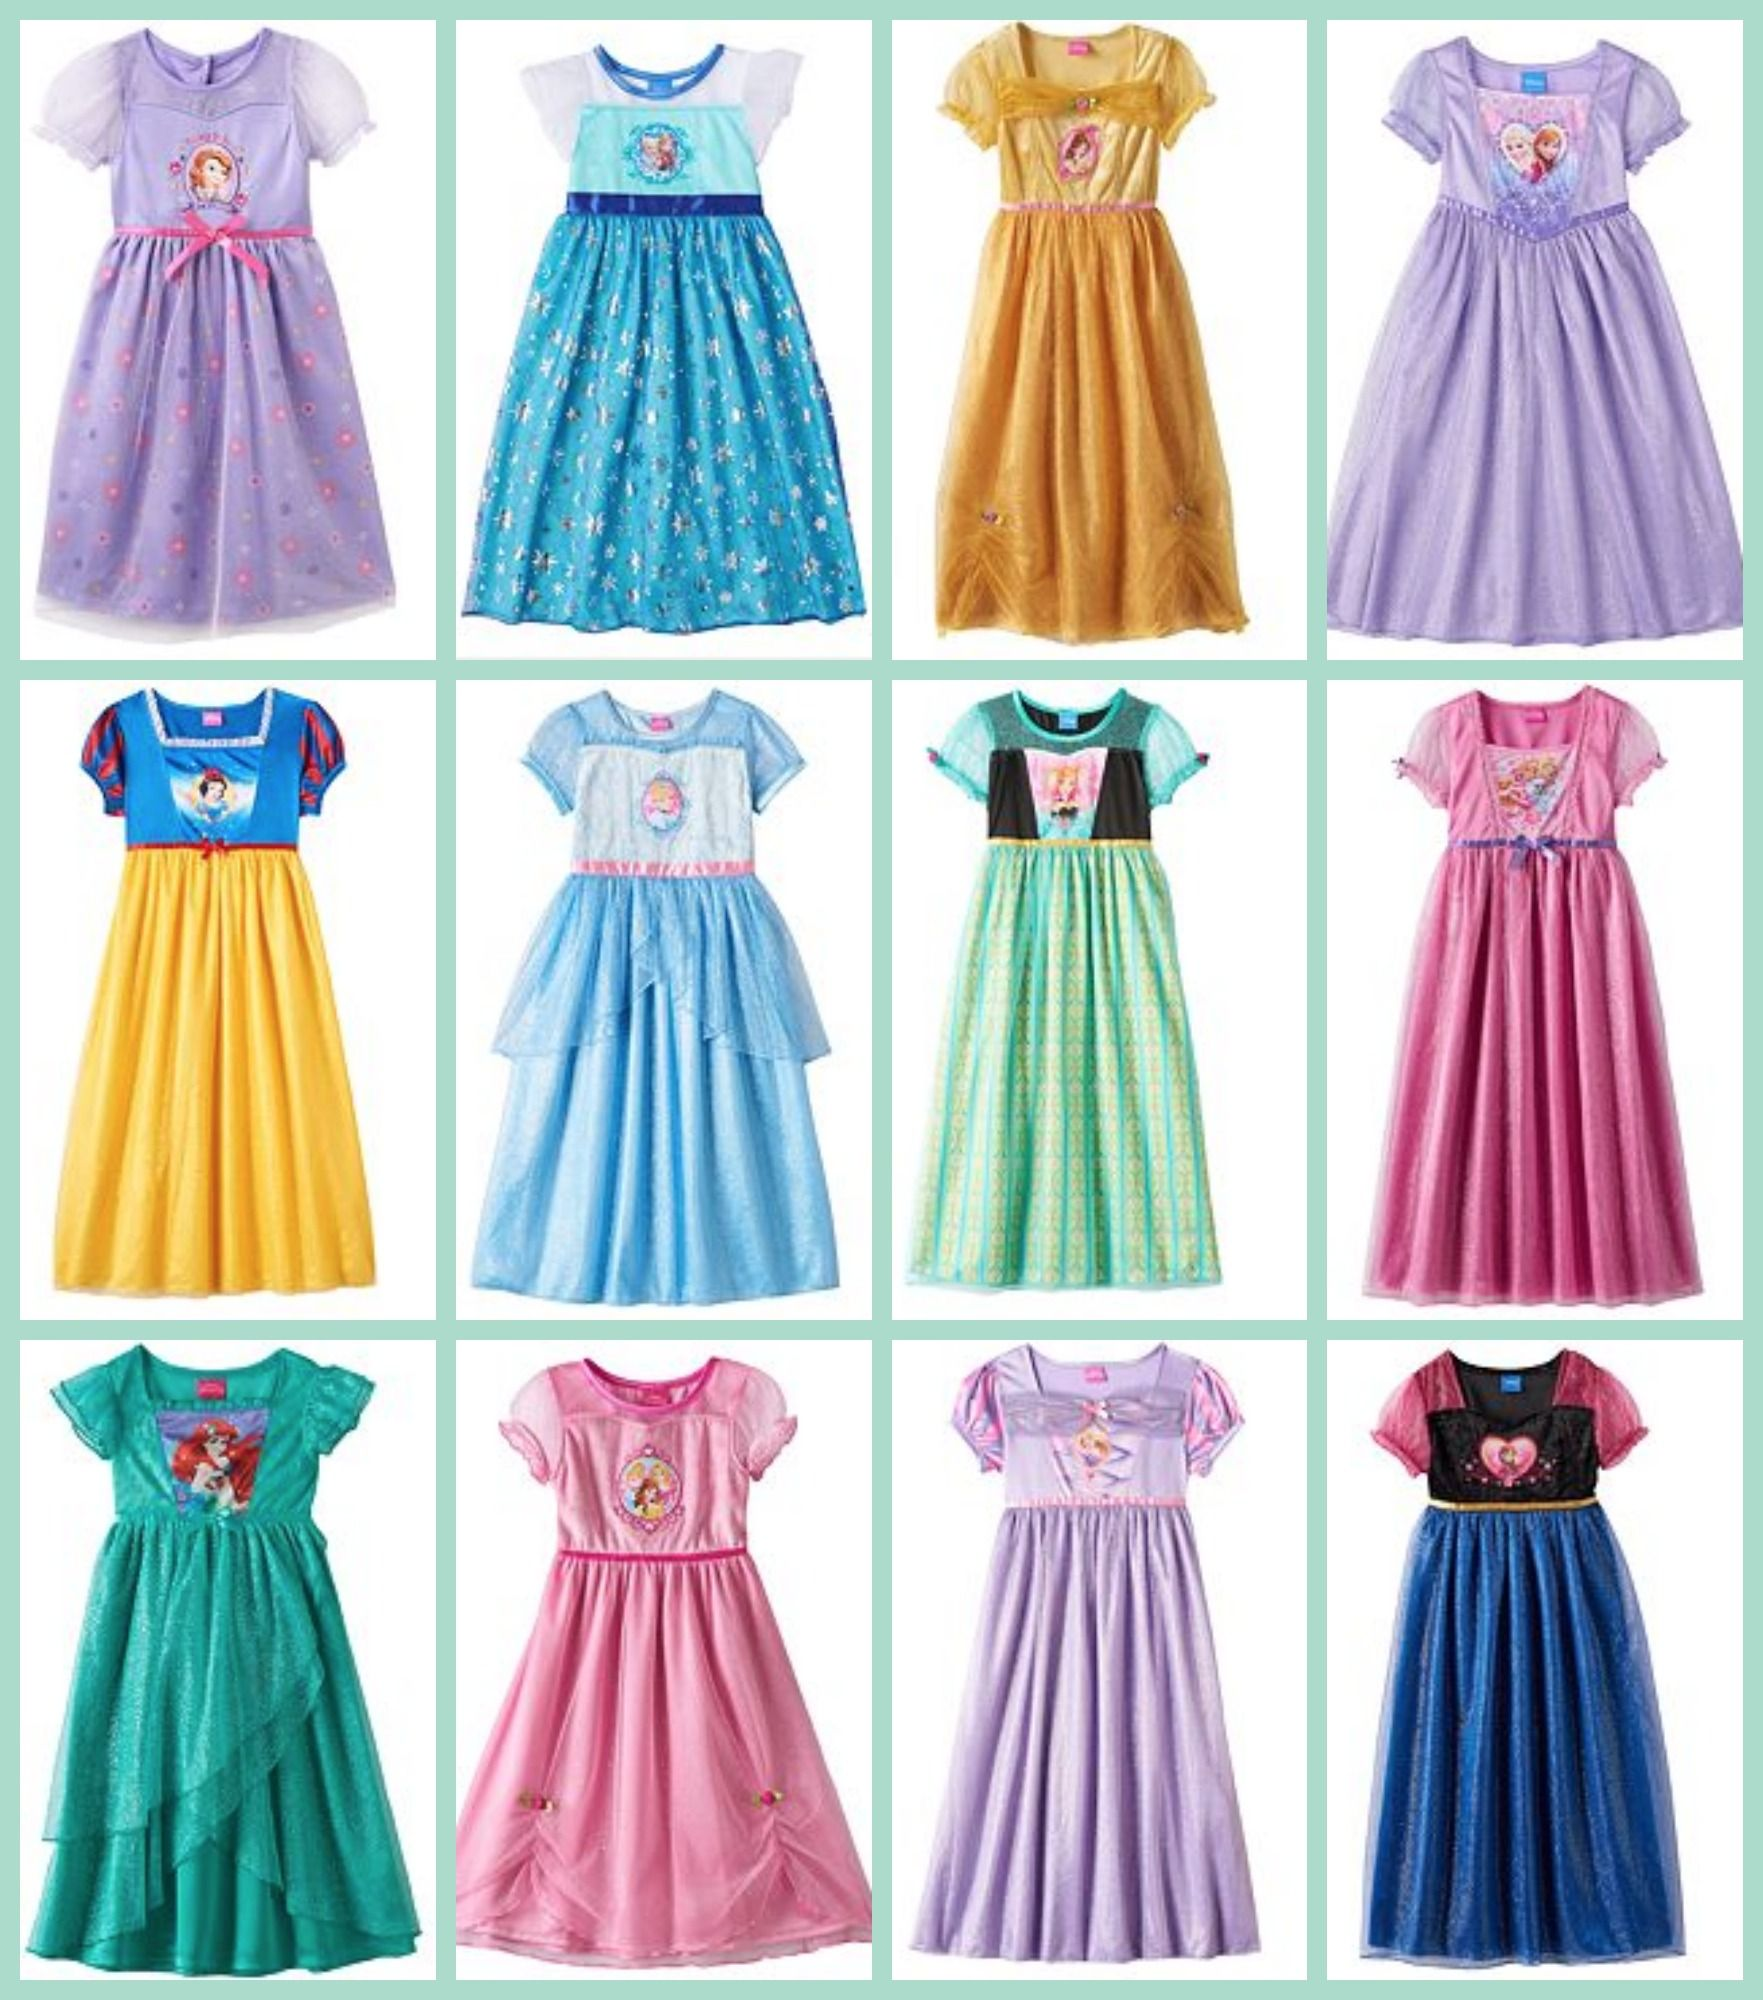 Fashion style Dress Princess up clothes for lady